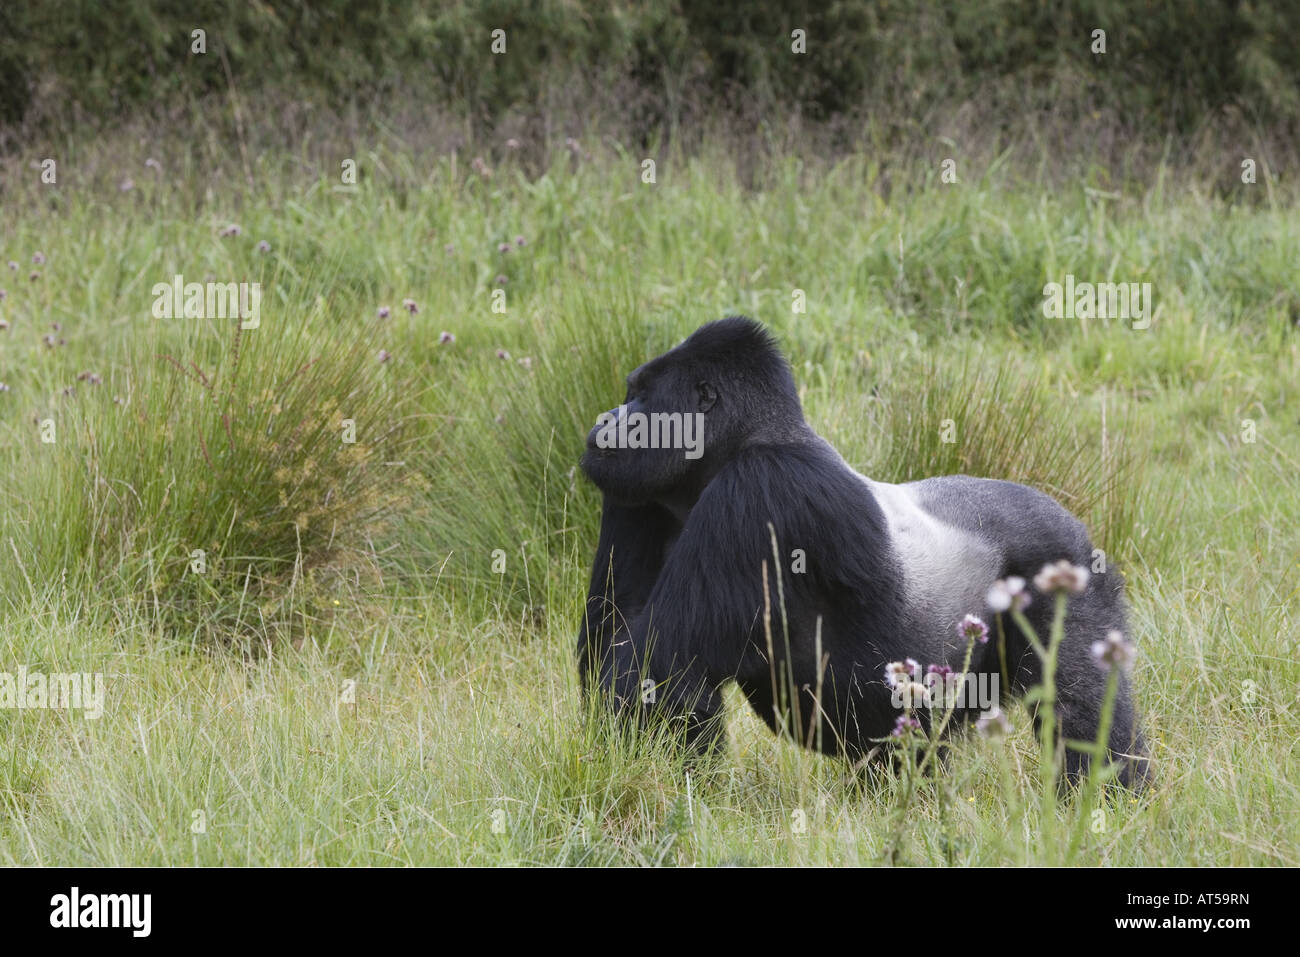 zoology / animals, mammal / mammalian, Hominidae, Mountain Gorilla (Gorilla gorilla beringei), sitting in meadow, - Stock Image